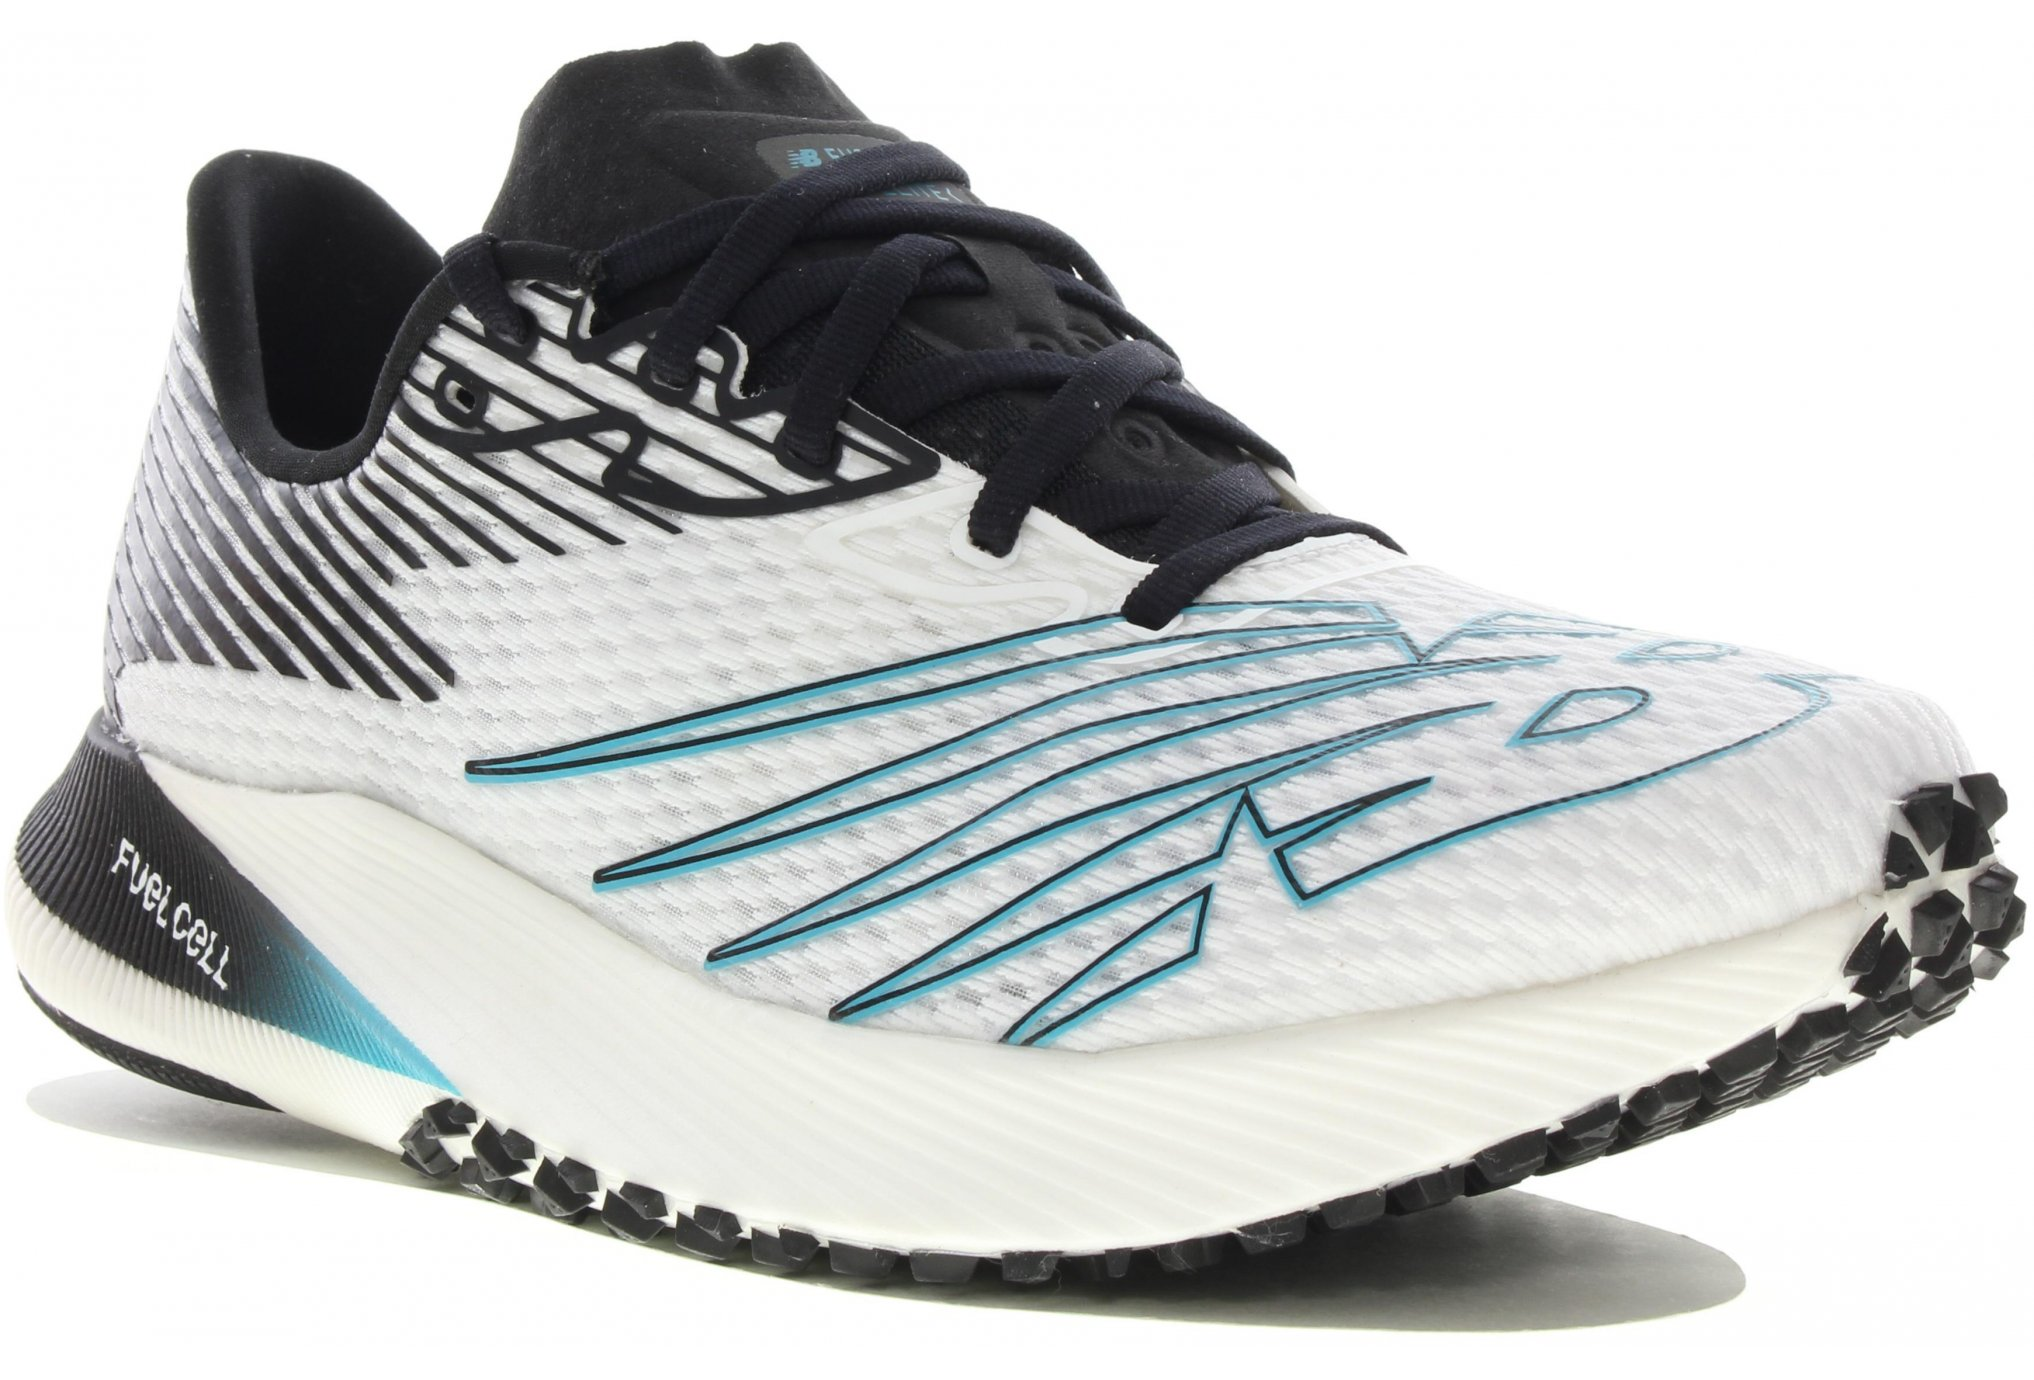 New Balance FuelCell RC Elite M Chaussures homme